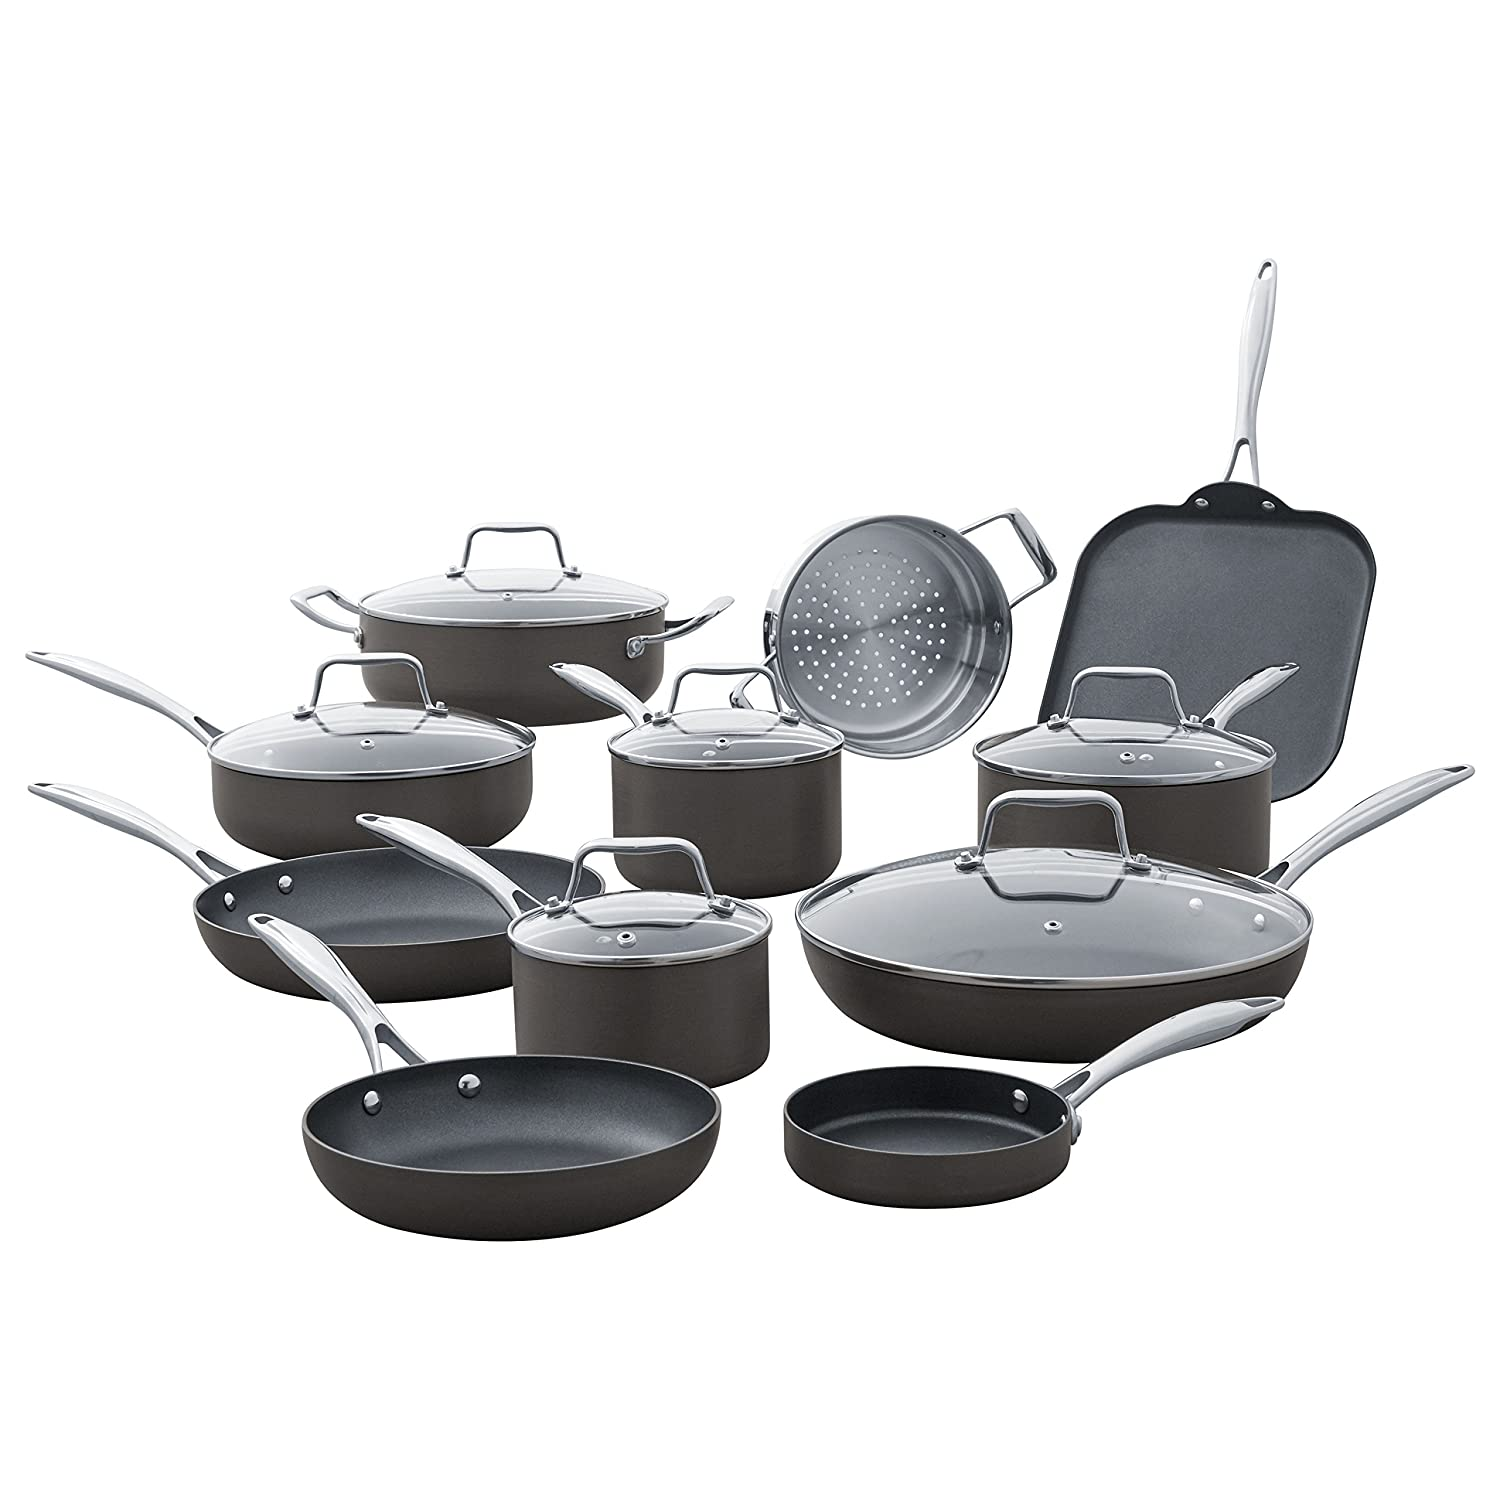 Stone & Beam Cookware Set, 17-Piece, Hard-Anodized Non-Stick Aluminum